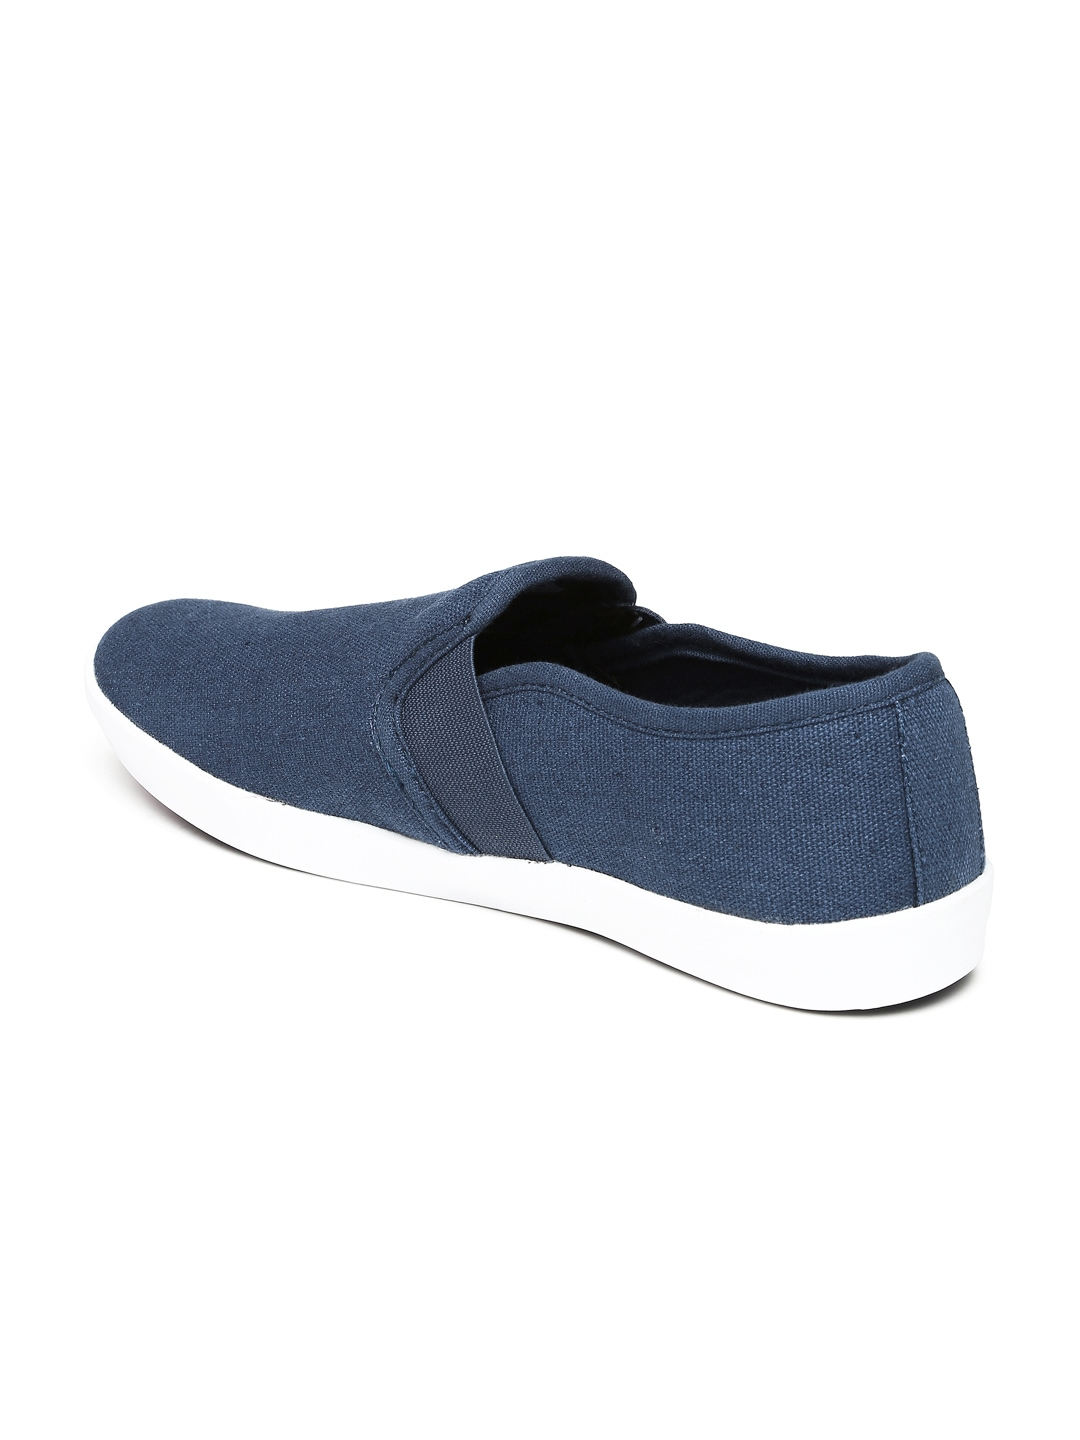 myntra roadster navy canvas shoes 763987 buy myntra